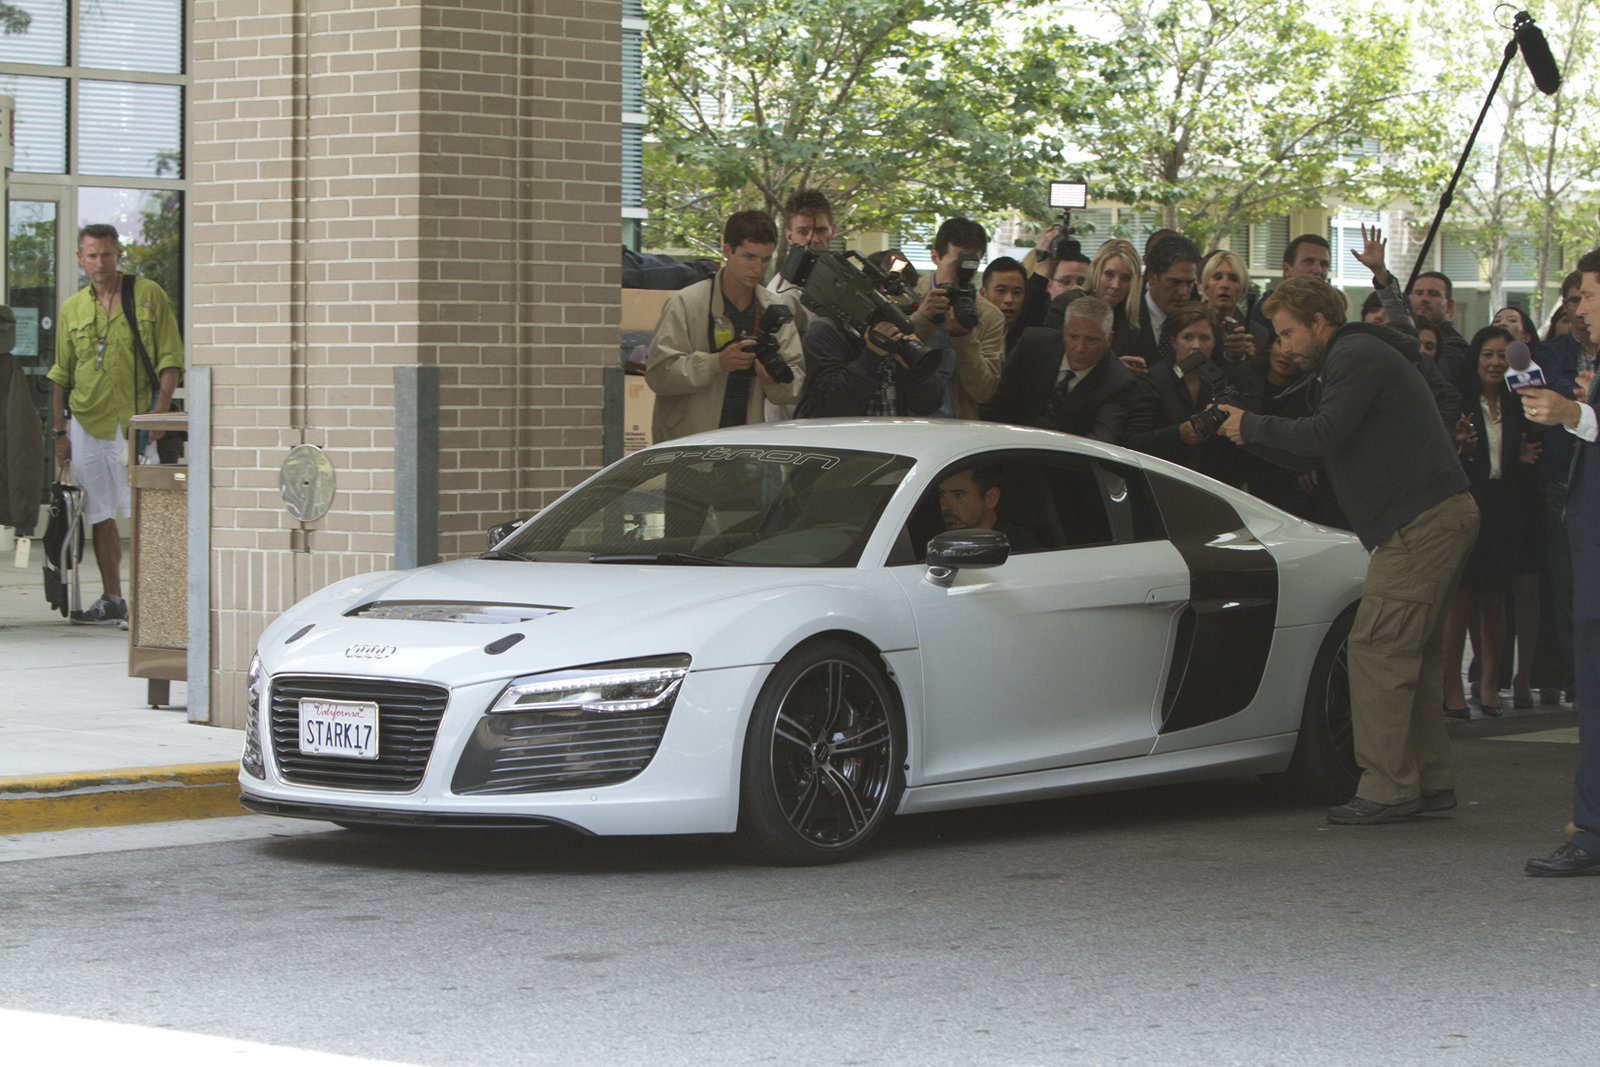 Tony Stark Returns To The Audi R8 In Iron Man 3 Top Speed